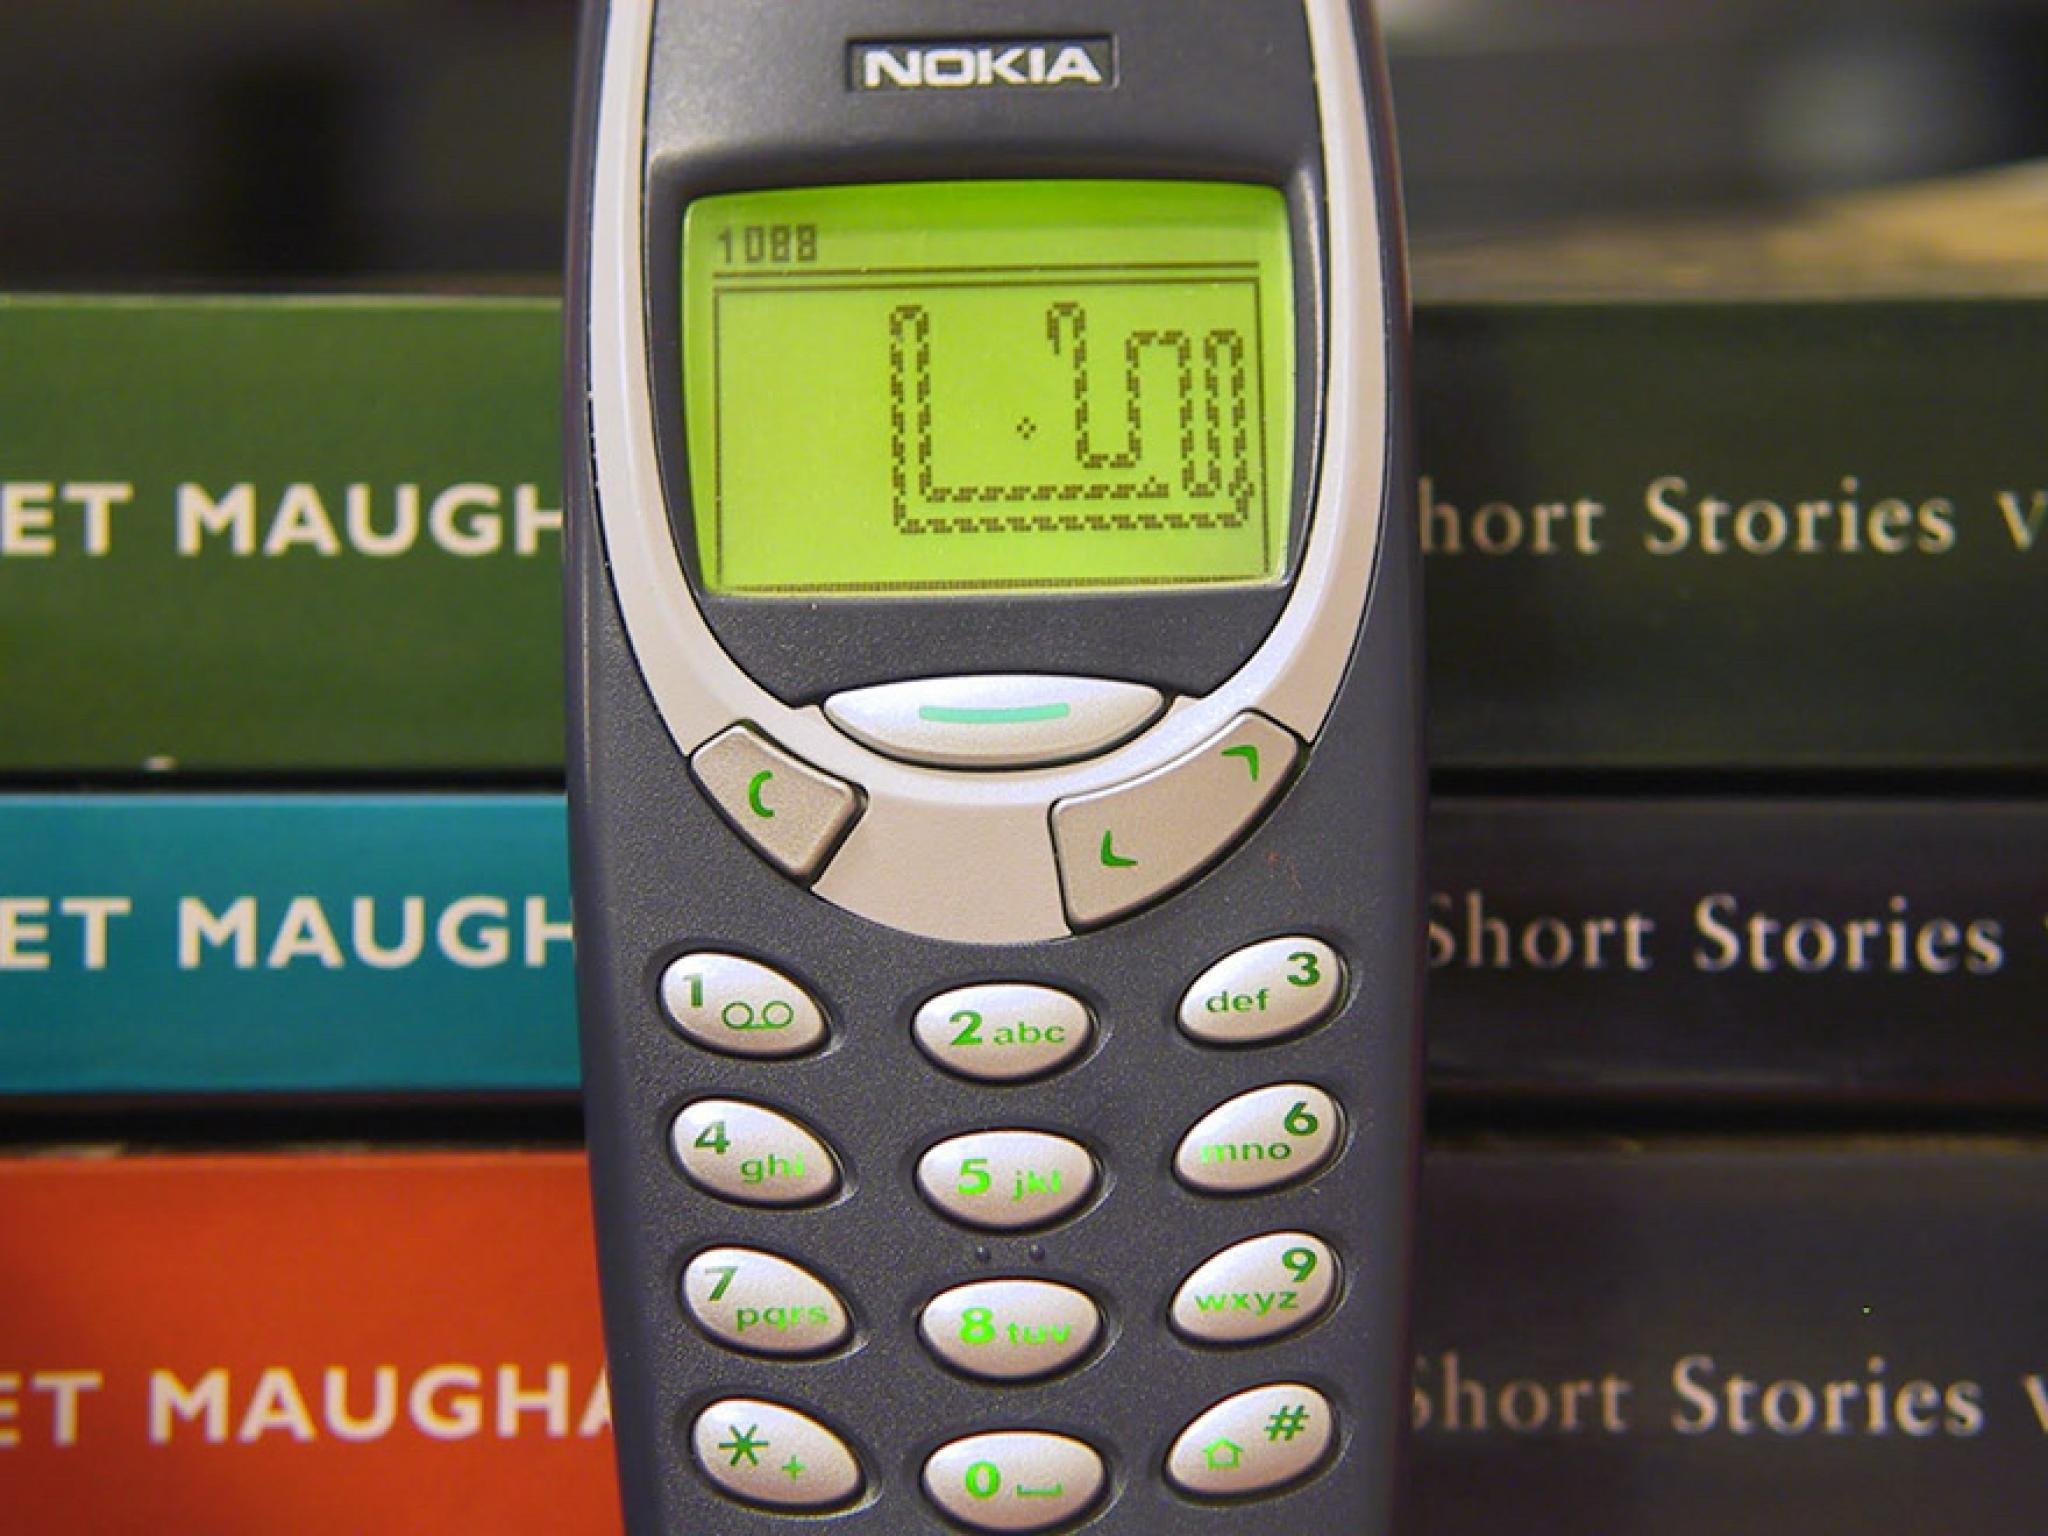 Nokia 3310 Returns